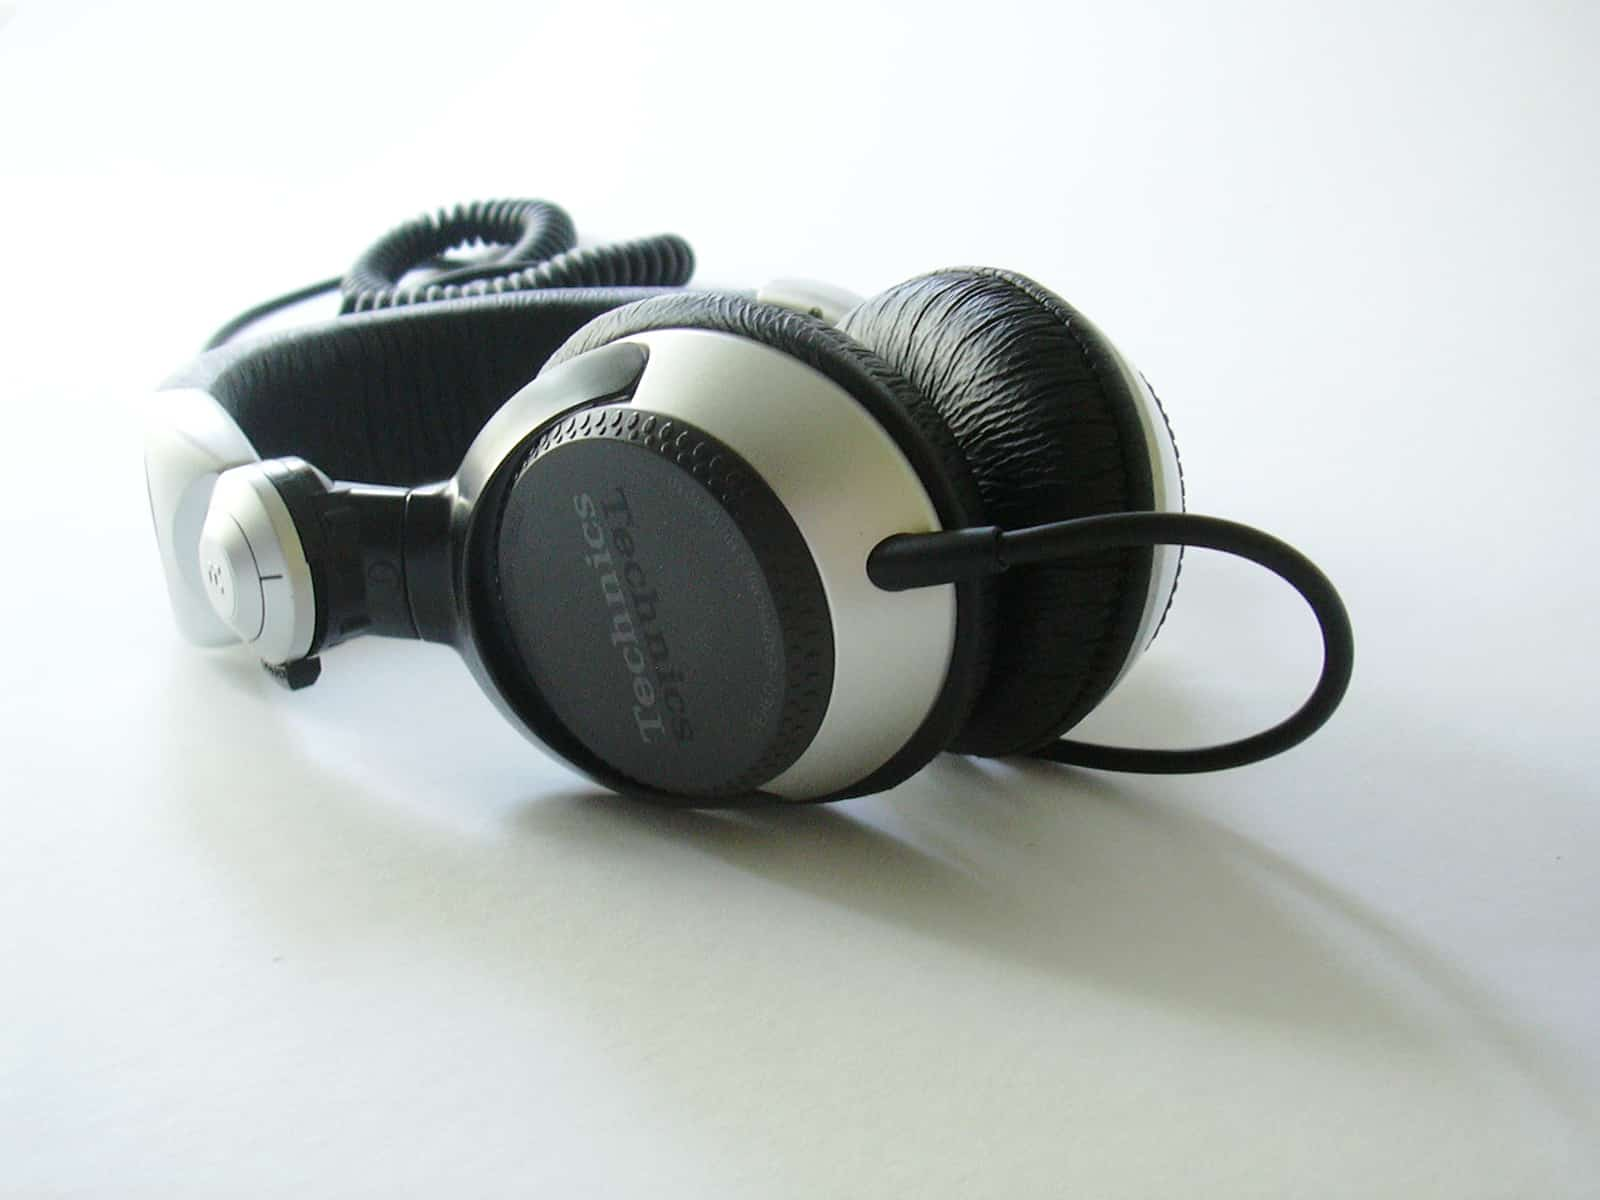 headphones - Headphones, Speakers and Critical Listening Skills